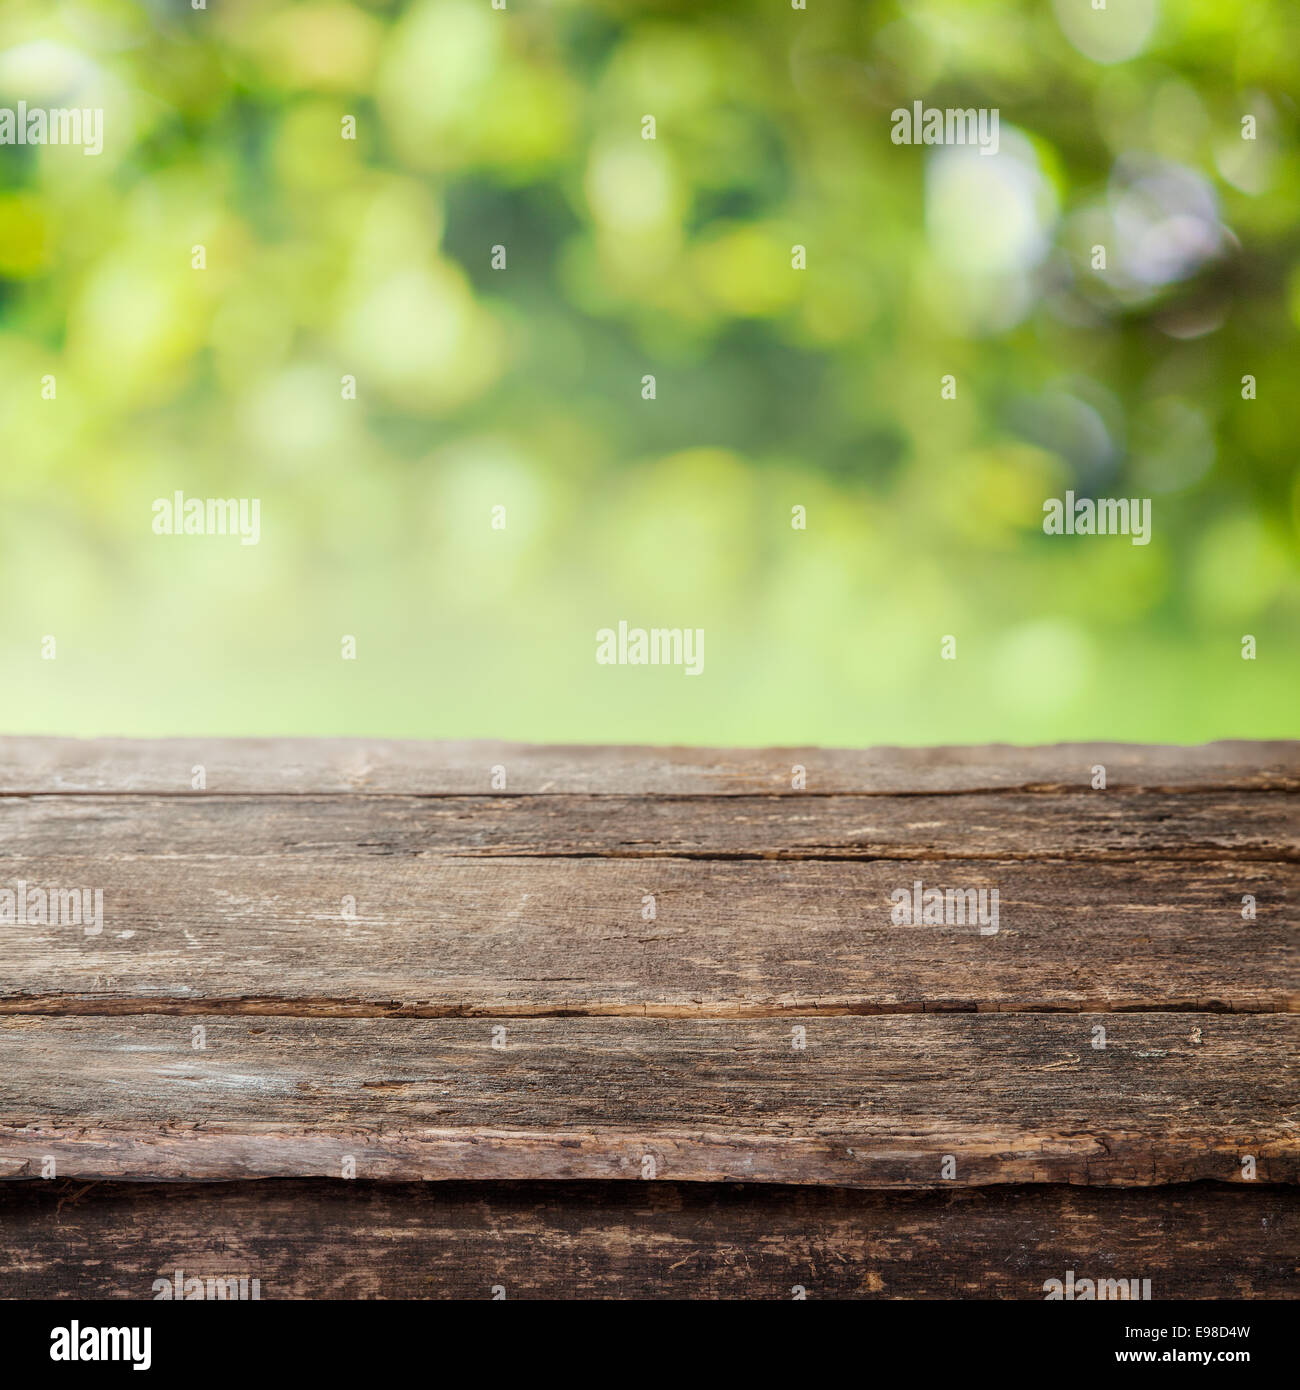 Rustic Weathered Cracked Wooden Country Fence Plank Or Table Top Against A Blurred Background Of Greenery And Foliage In Summer